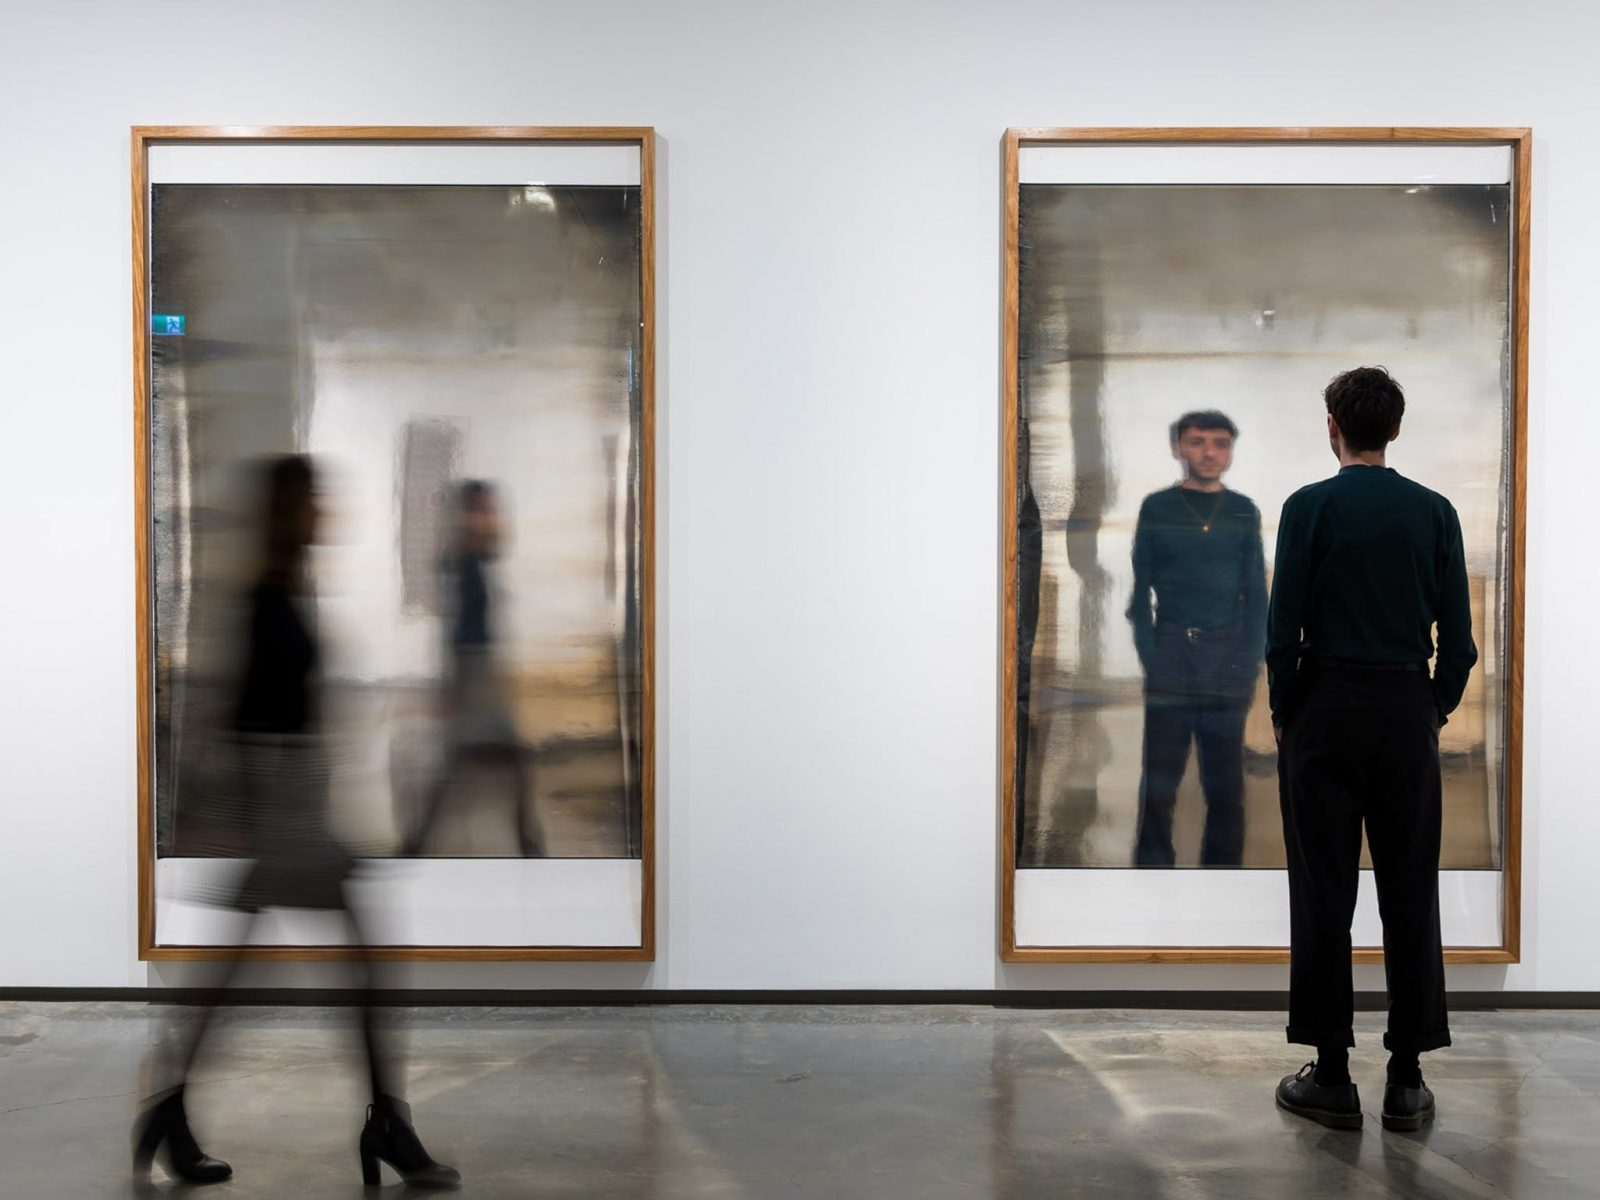 Two mirrored artworks